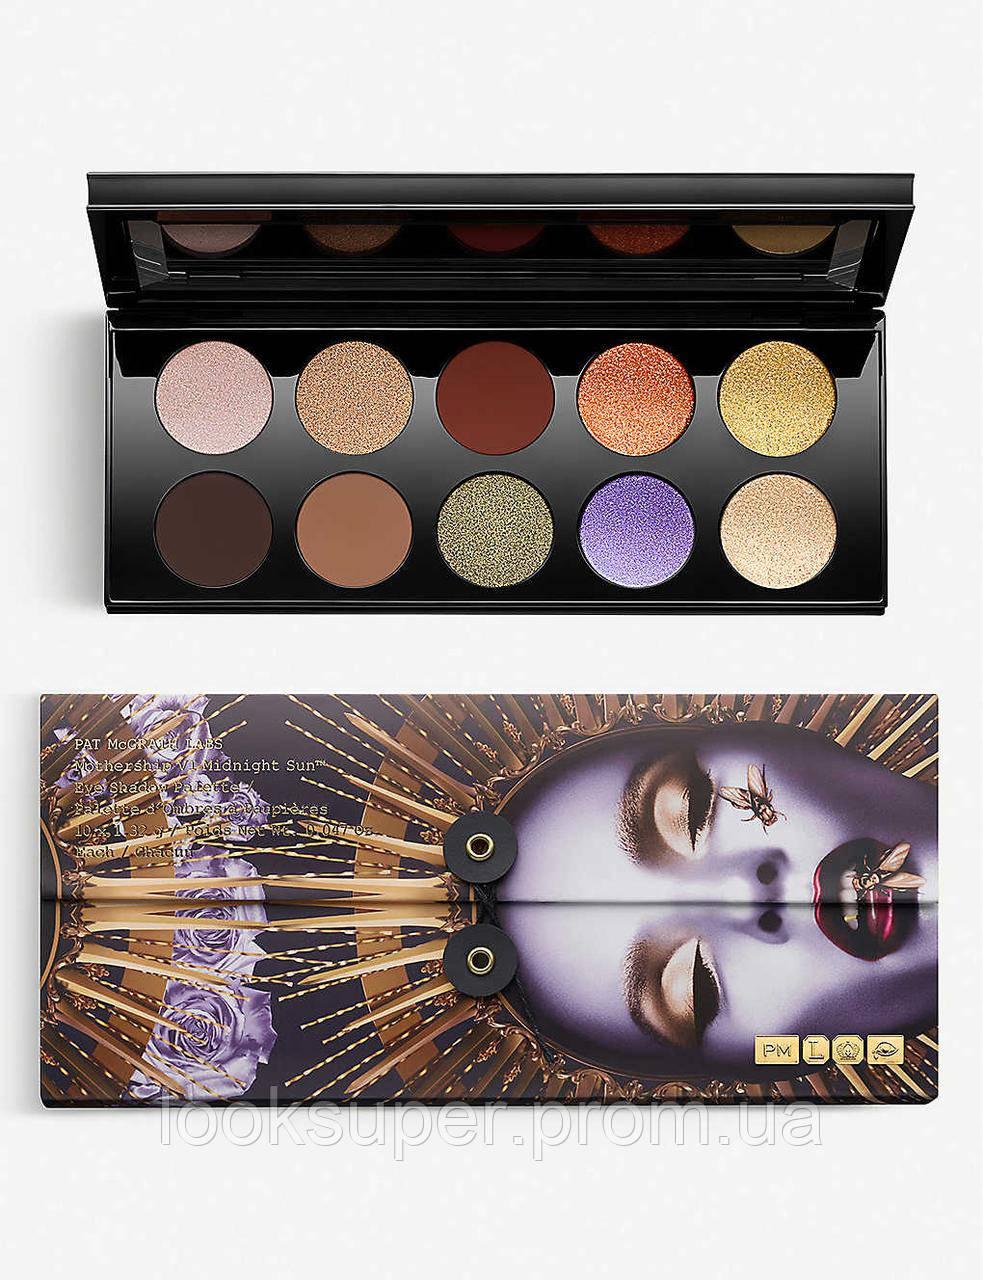 Палетка теней Pat McGrath Labs Mothership VI Eyeshadow Palette Midnight Sun